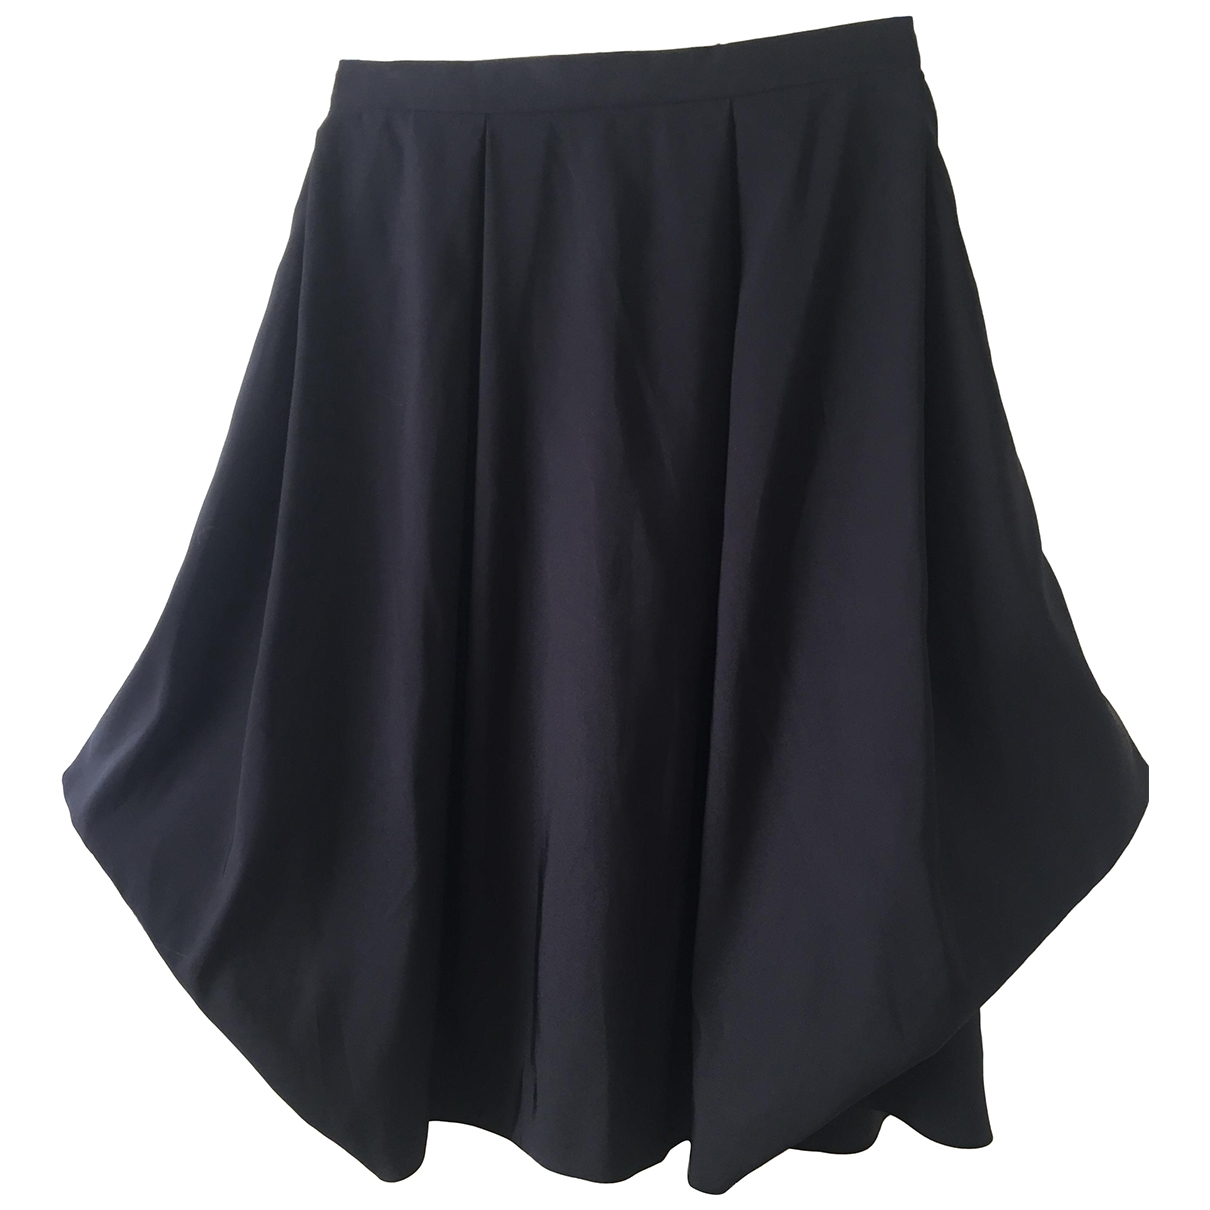 Cos \N Black skirt for Women 14 UK